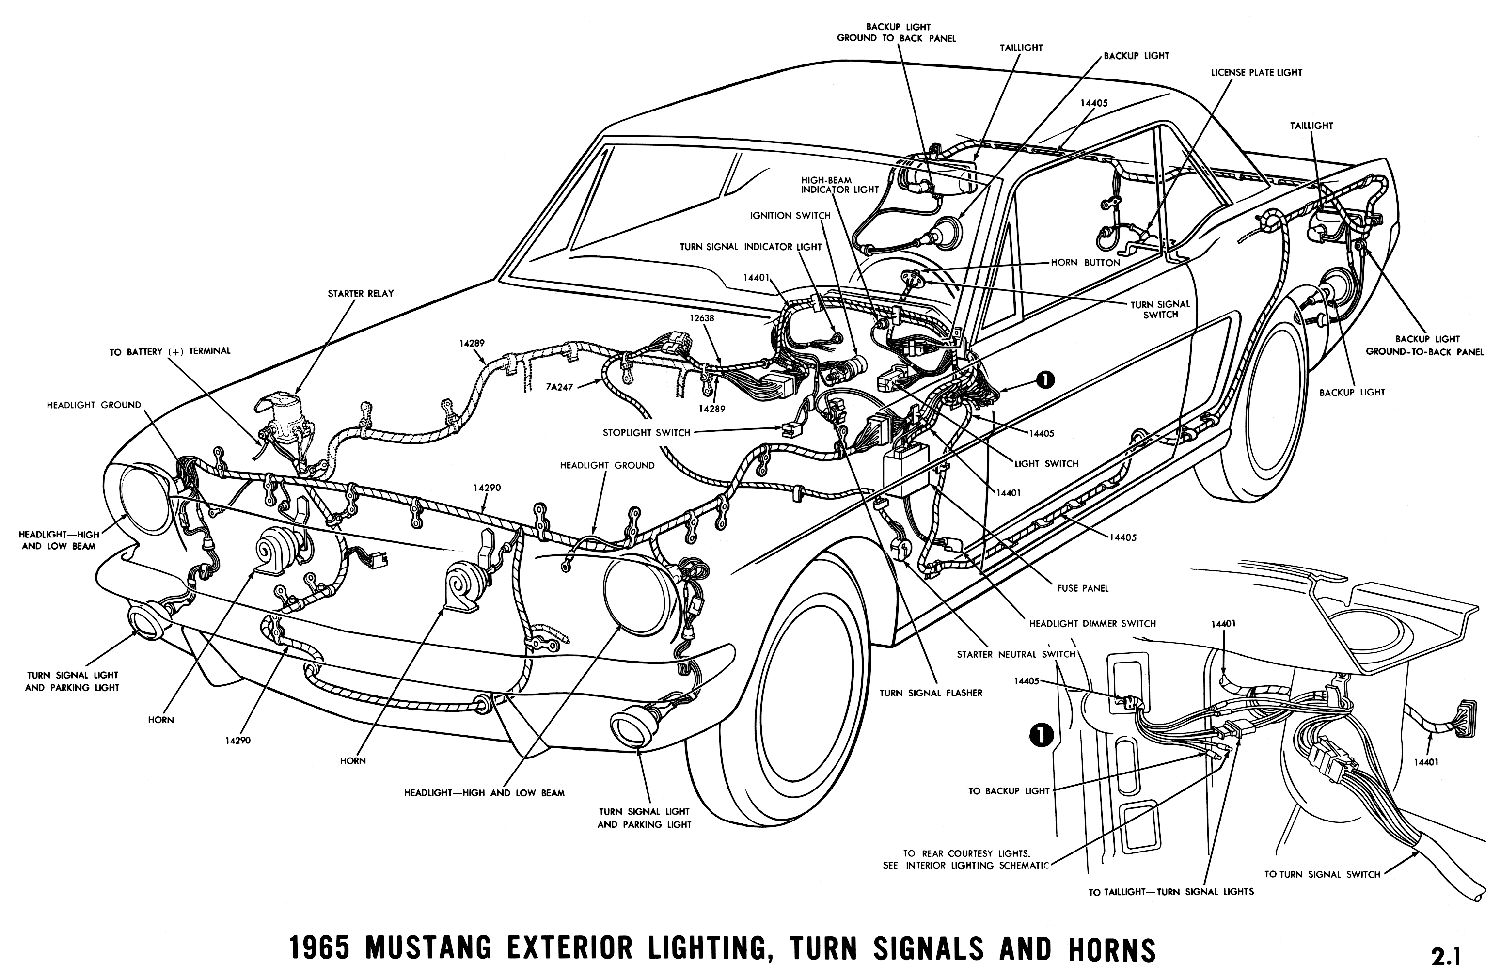 1965 Mustang Wiring Harness Diagram Data 68 Diagrams Average Joe Restoration 65 Alternator